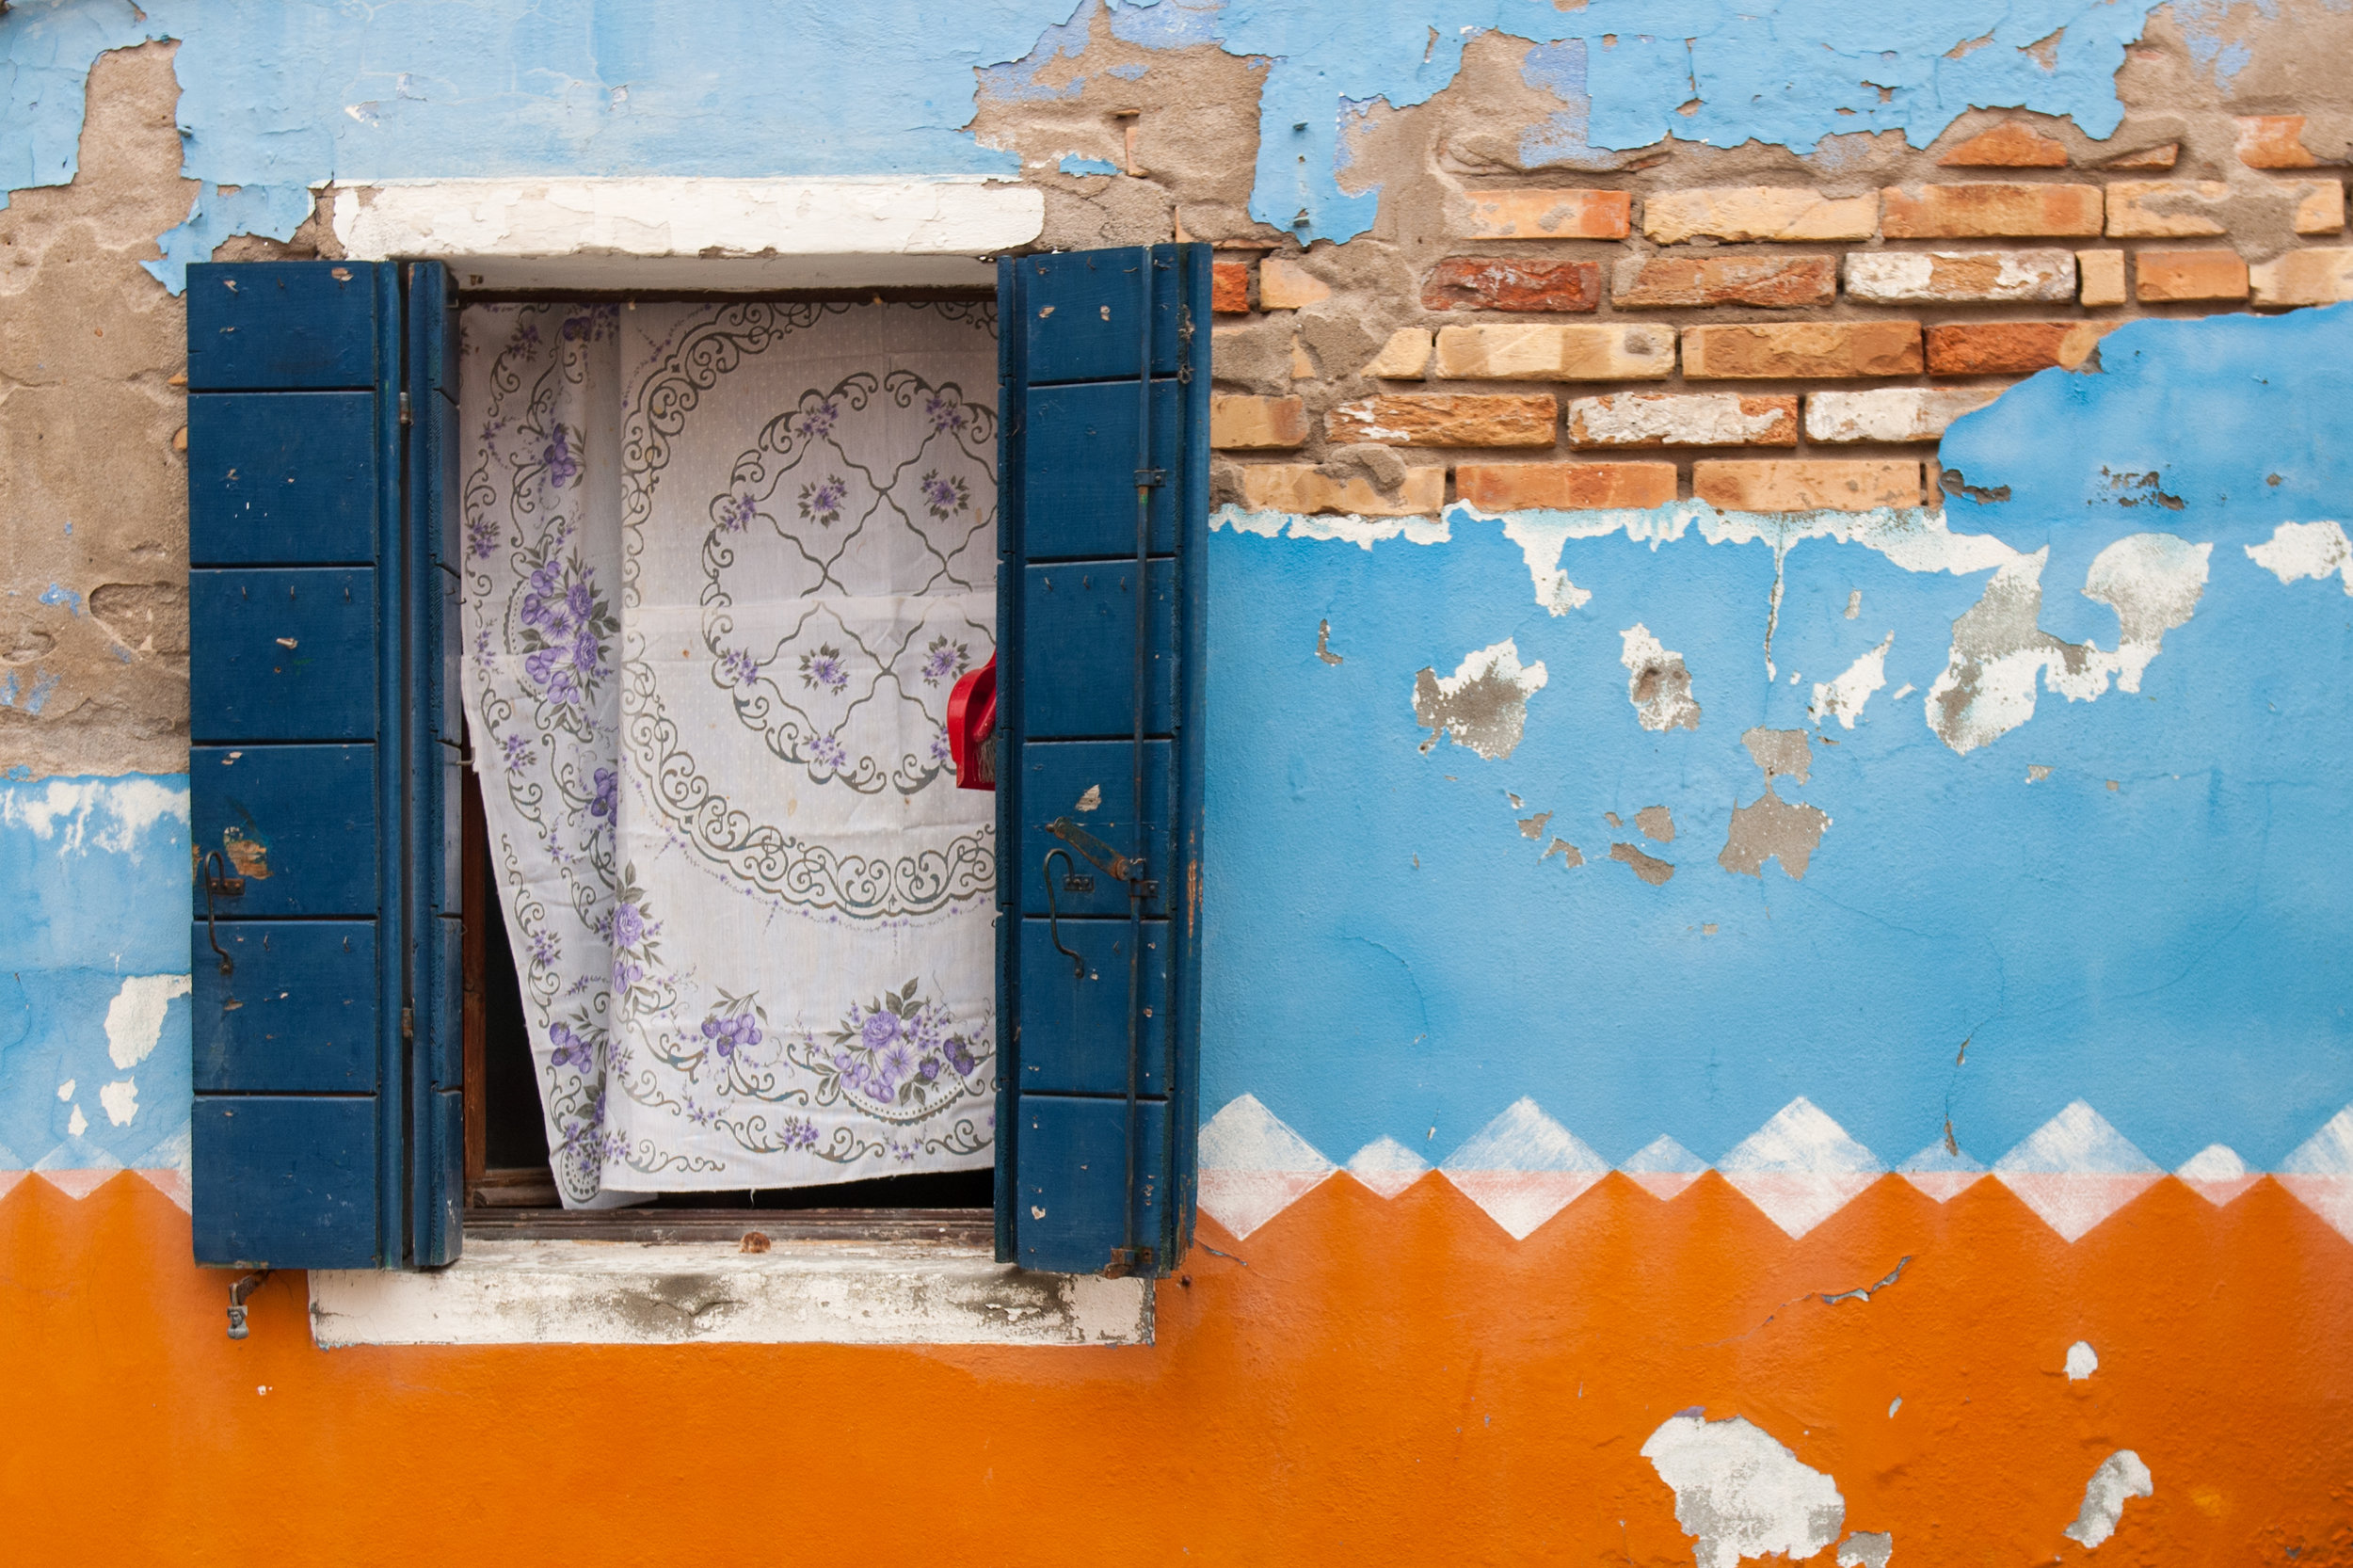 A blue window on an orange and ble wall in the island of Burano, Venice, Italy.